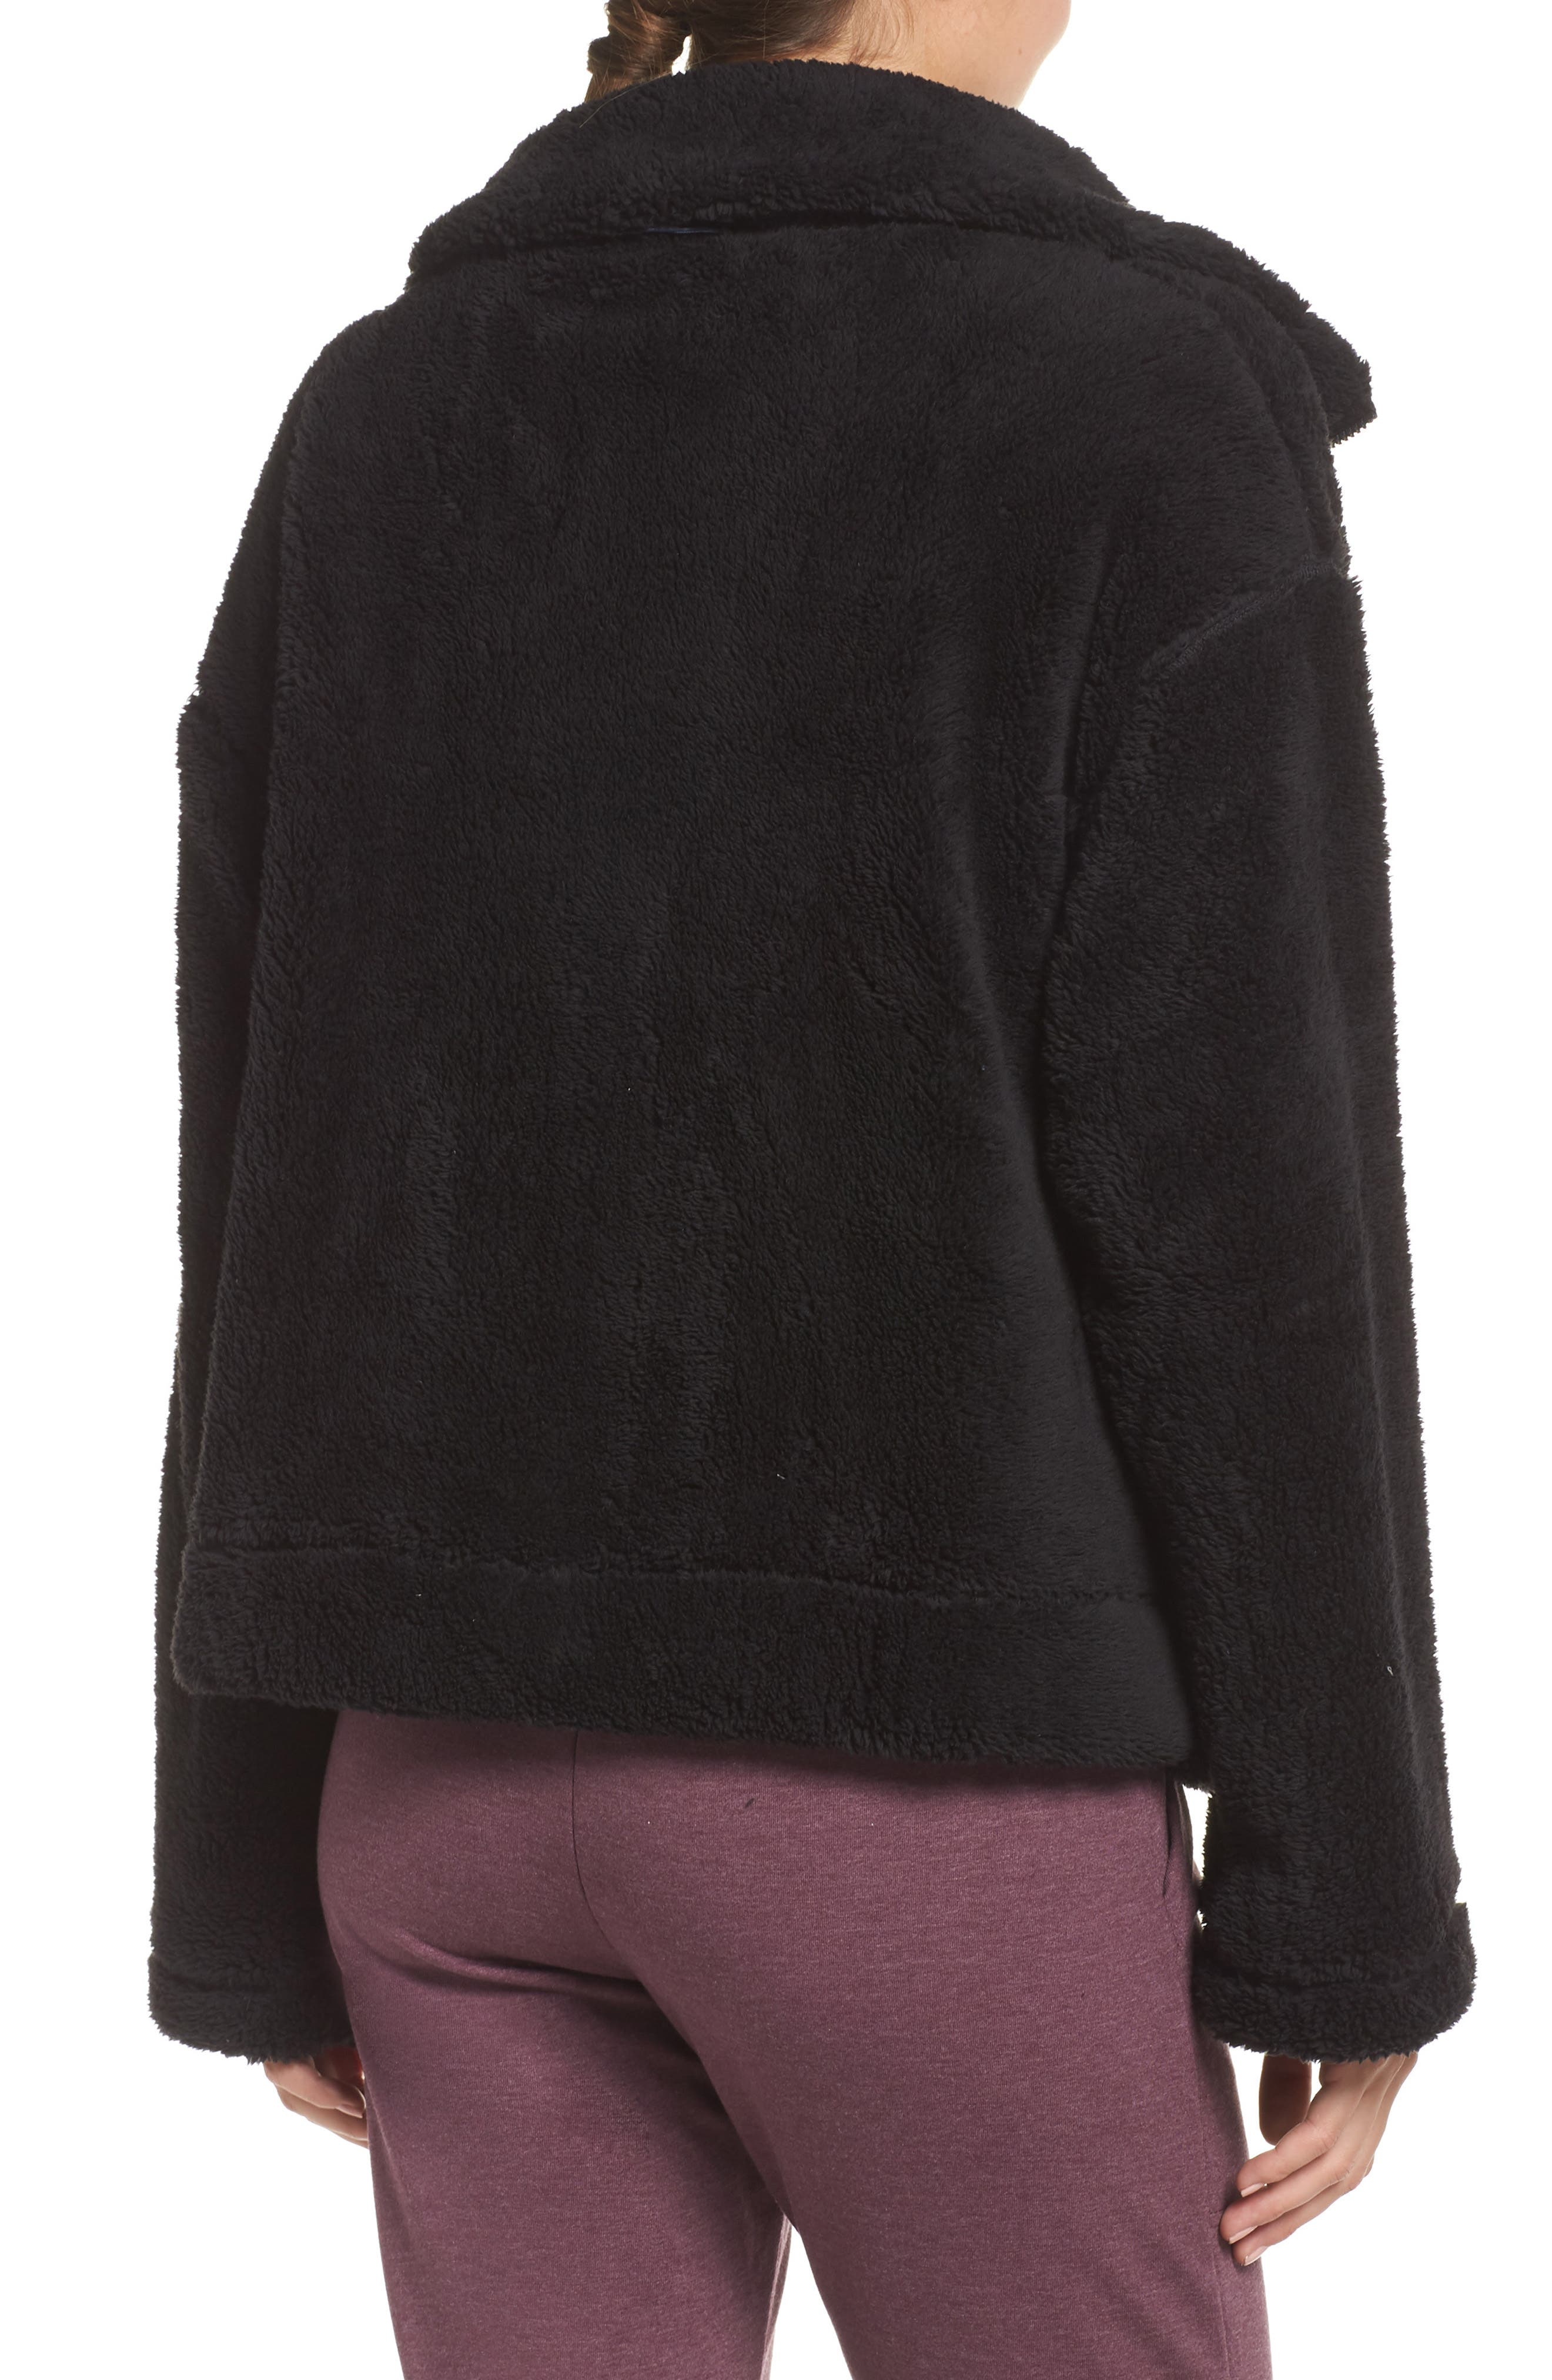 Dazed Fleece Jacket,                             Alternate thumbnail 2, color,                             BLACK